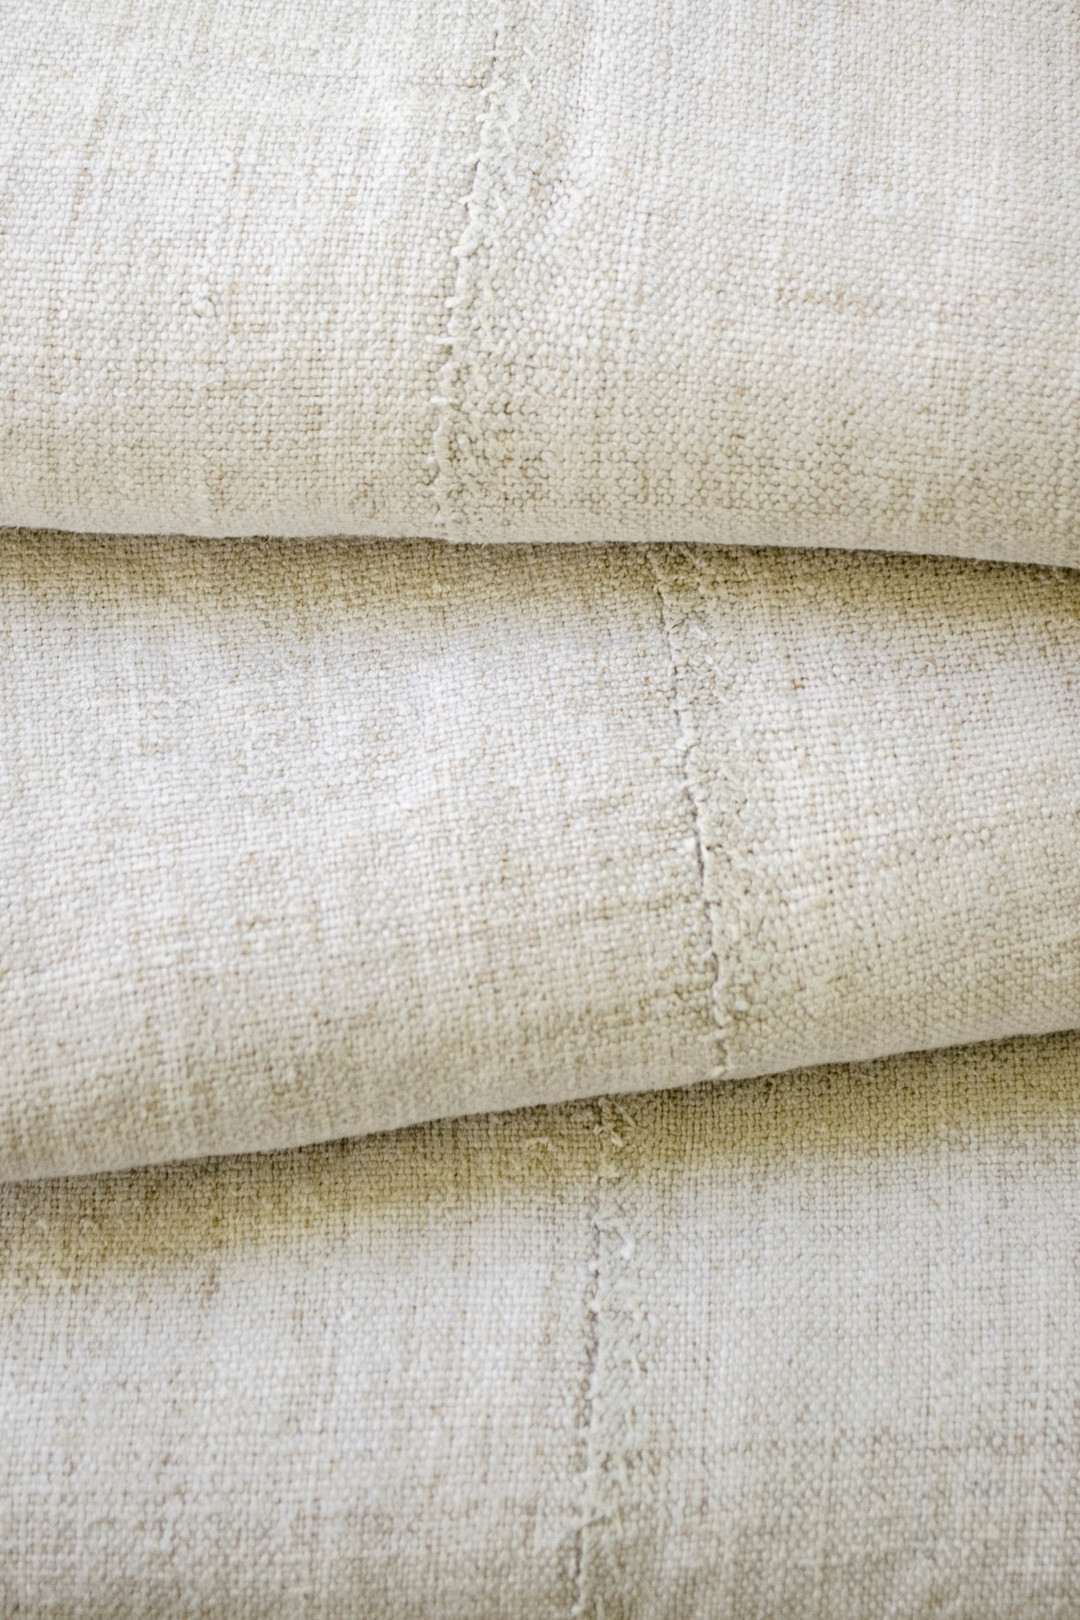 How and Why to Buy Antique Hemp Sheets